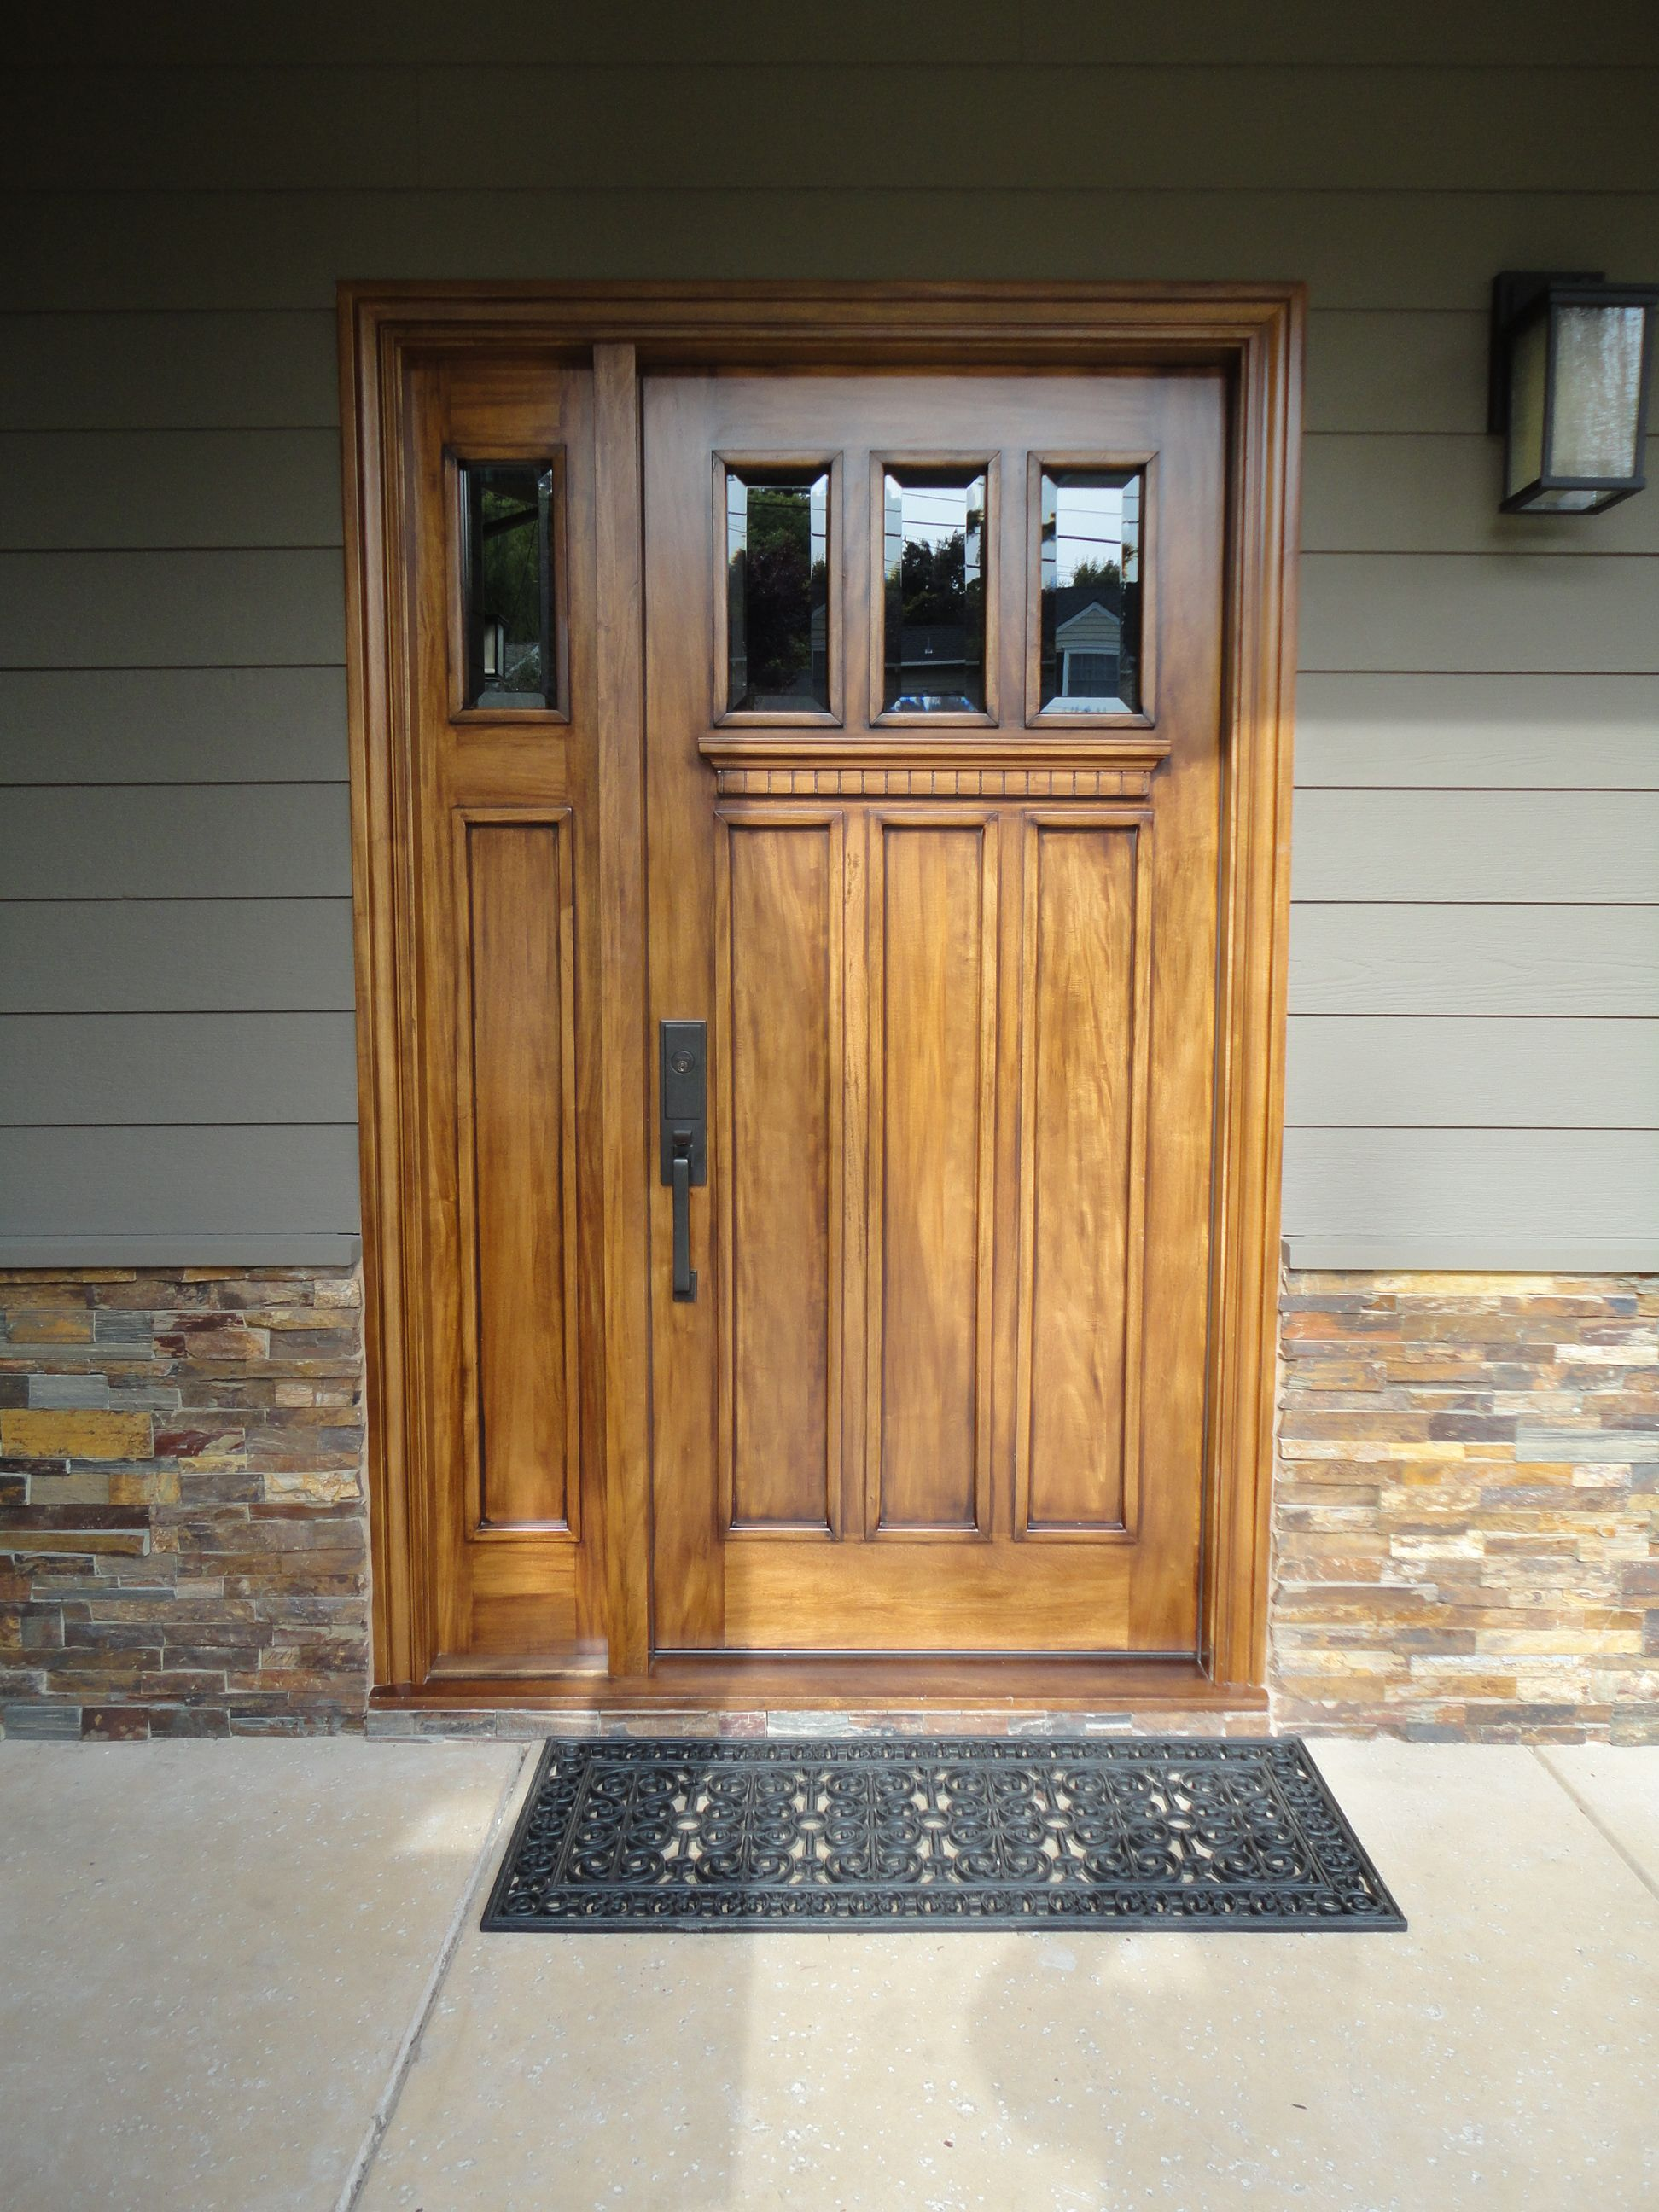 3 Light 3 Panel Craftsman Entry Door With One 1 Light 1 Panel Sidelight Front Door Design Entry Doors Entry Door With Sidelights